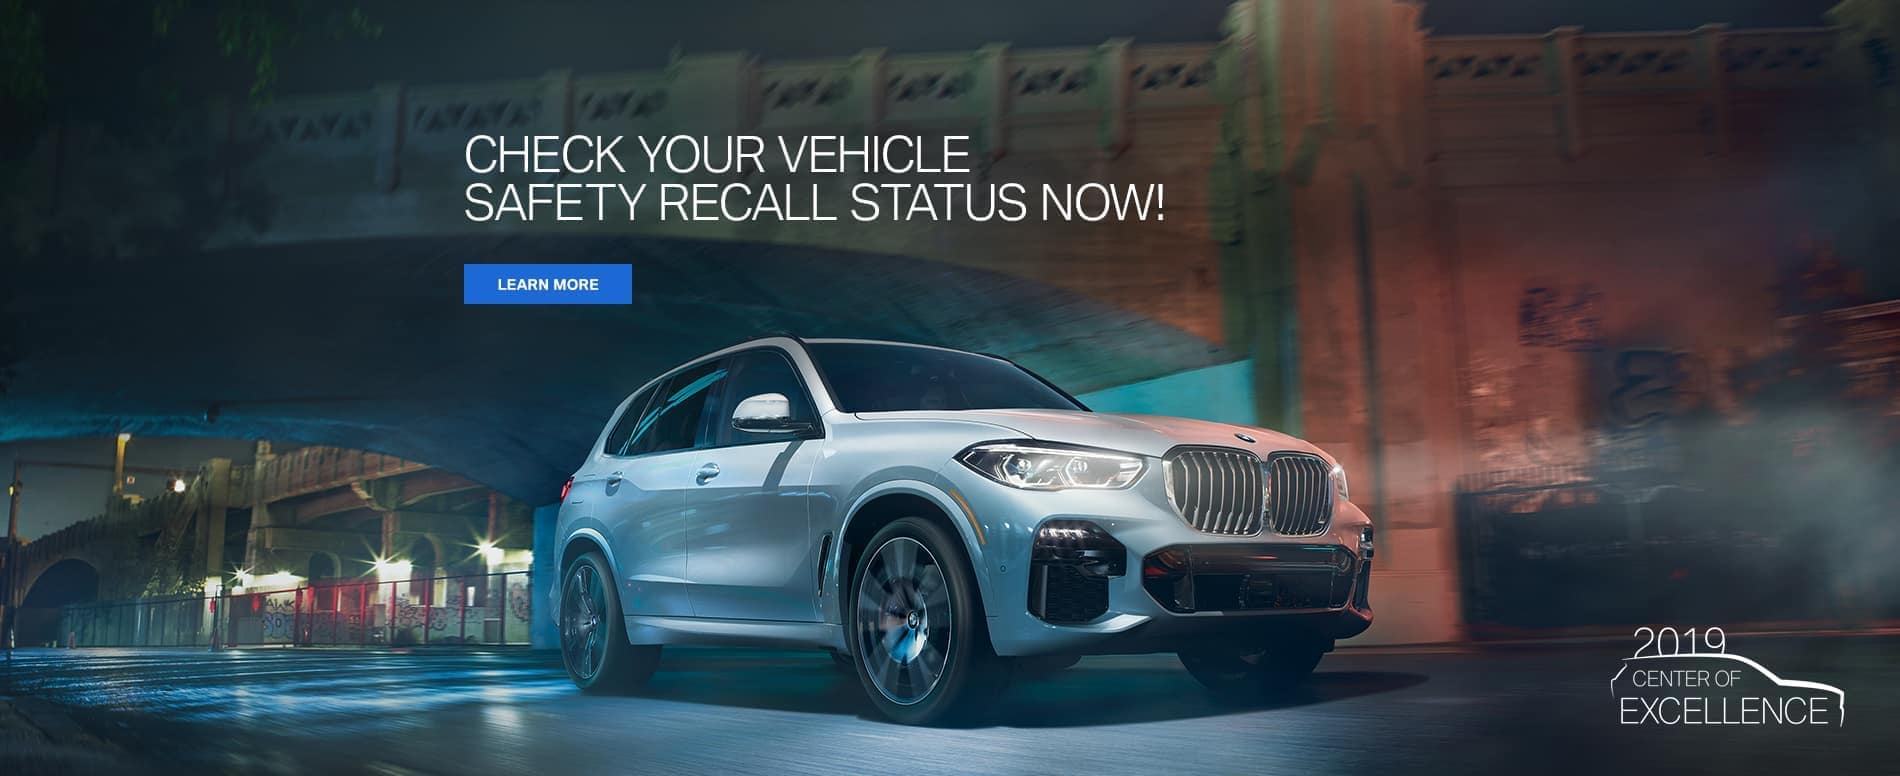 BMW North Haven >> Bmw Of North Haven Ct Used Bmw For Sale In North Haven Ct